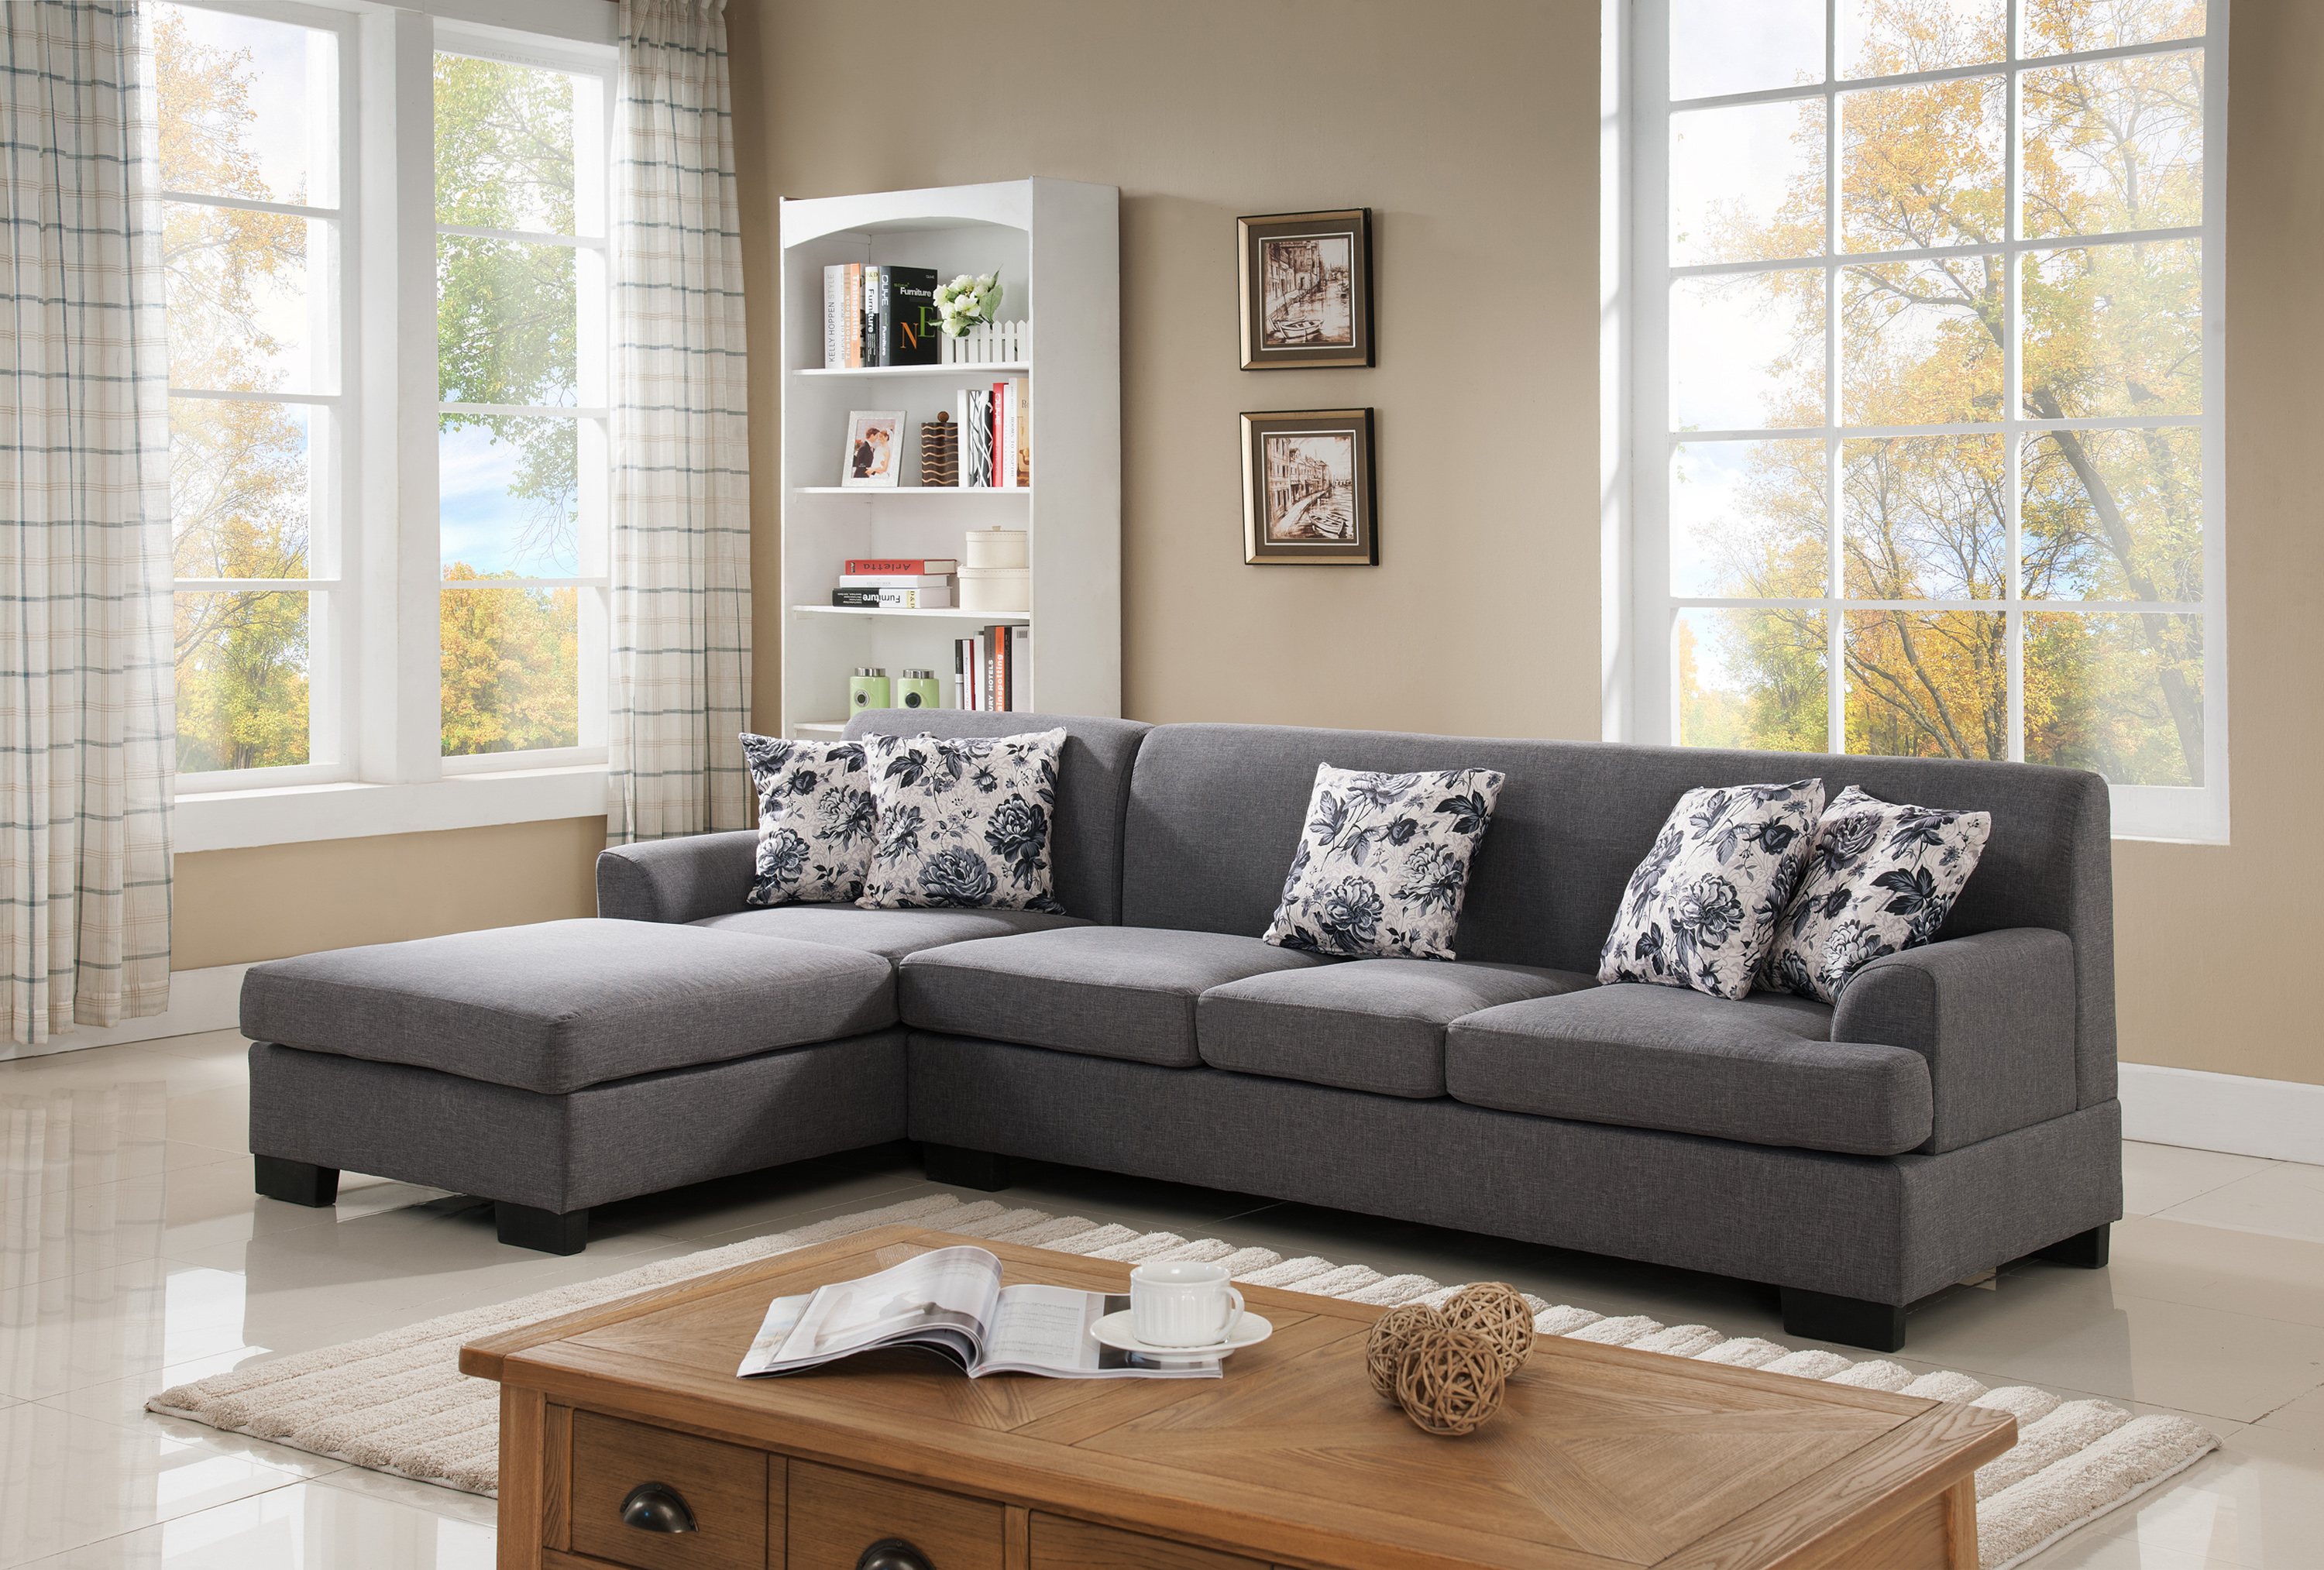 Allen Modern Fabric Upholstered 2-Pc Configurable Left or Right Facing Sectional Sofa Grey  sc 1 st  Walmart : right facing sectional - Sectionals, Sofas & Couches